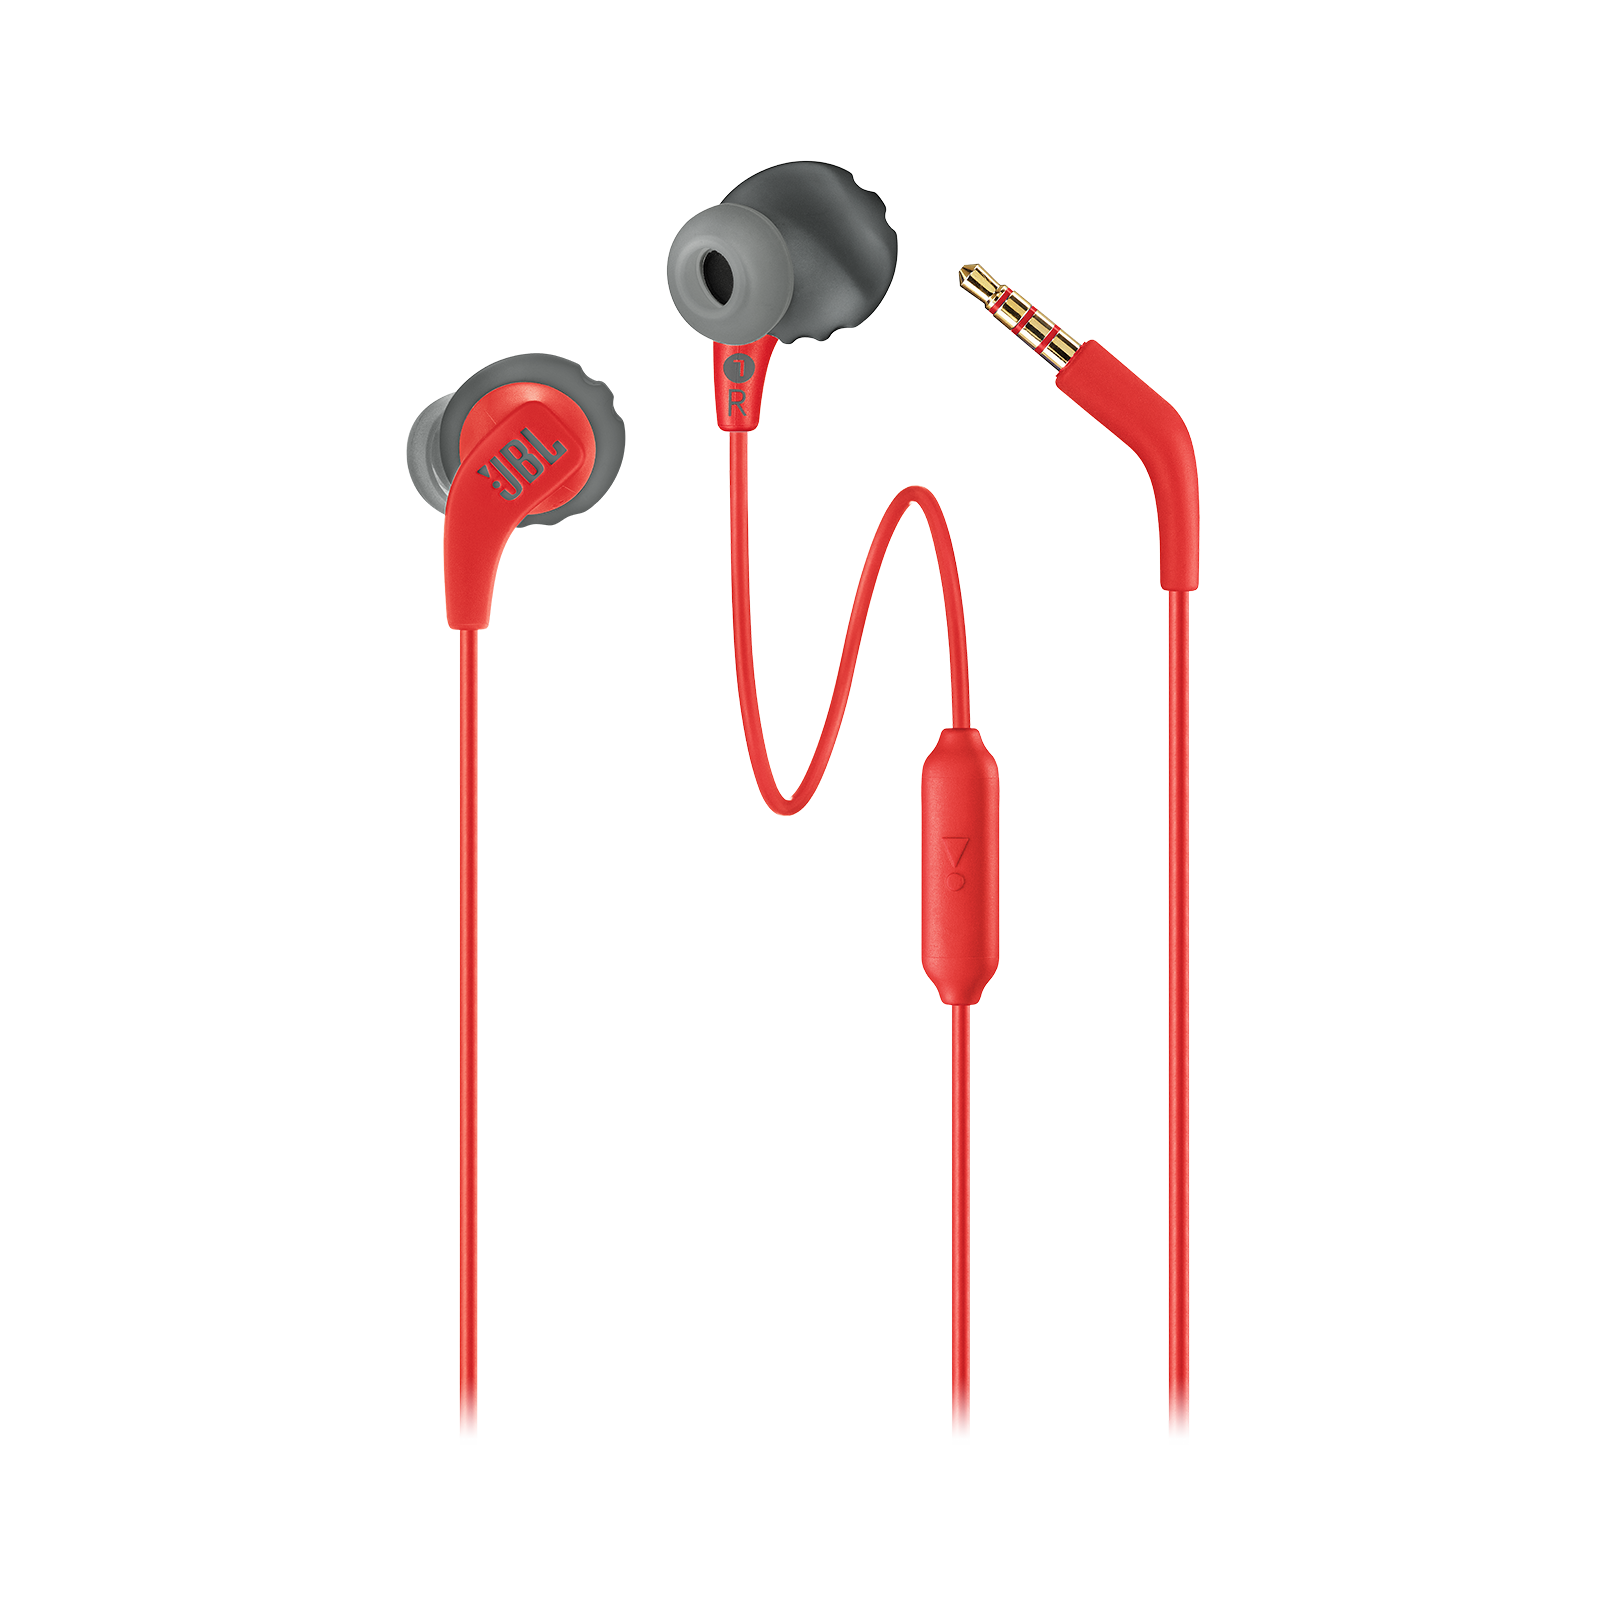 JBL Endurance RUN - Red - Sweatproof Wired Sport In-Ear Headphones - Detailshot 1